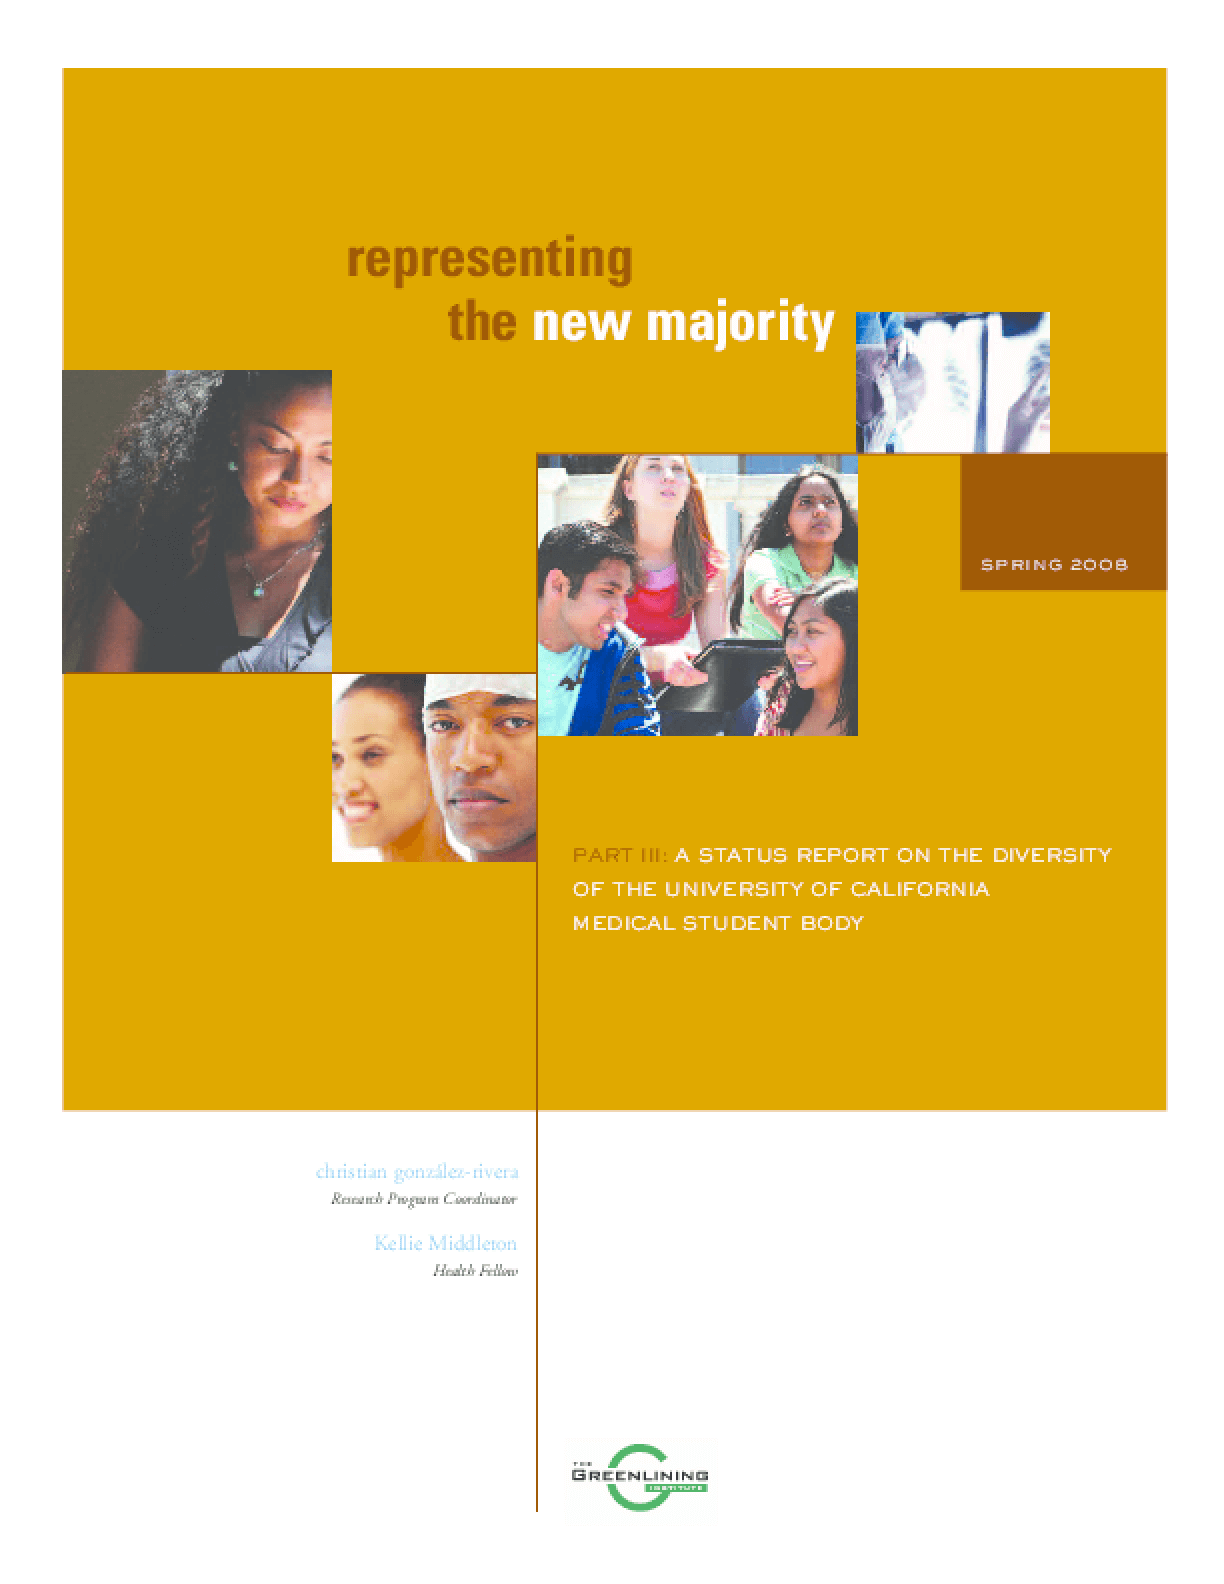 Representing the New Majority: A Status Report on the Diversity of the University of California Medical School Faculty